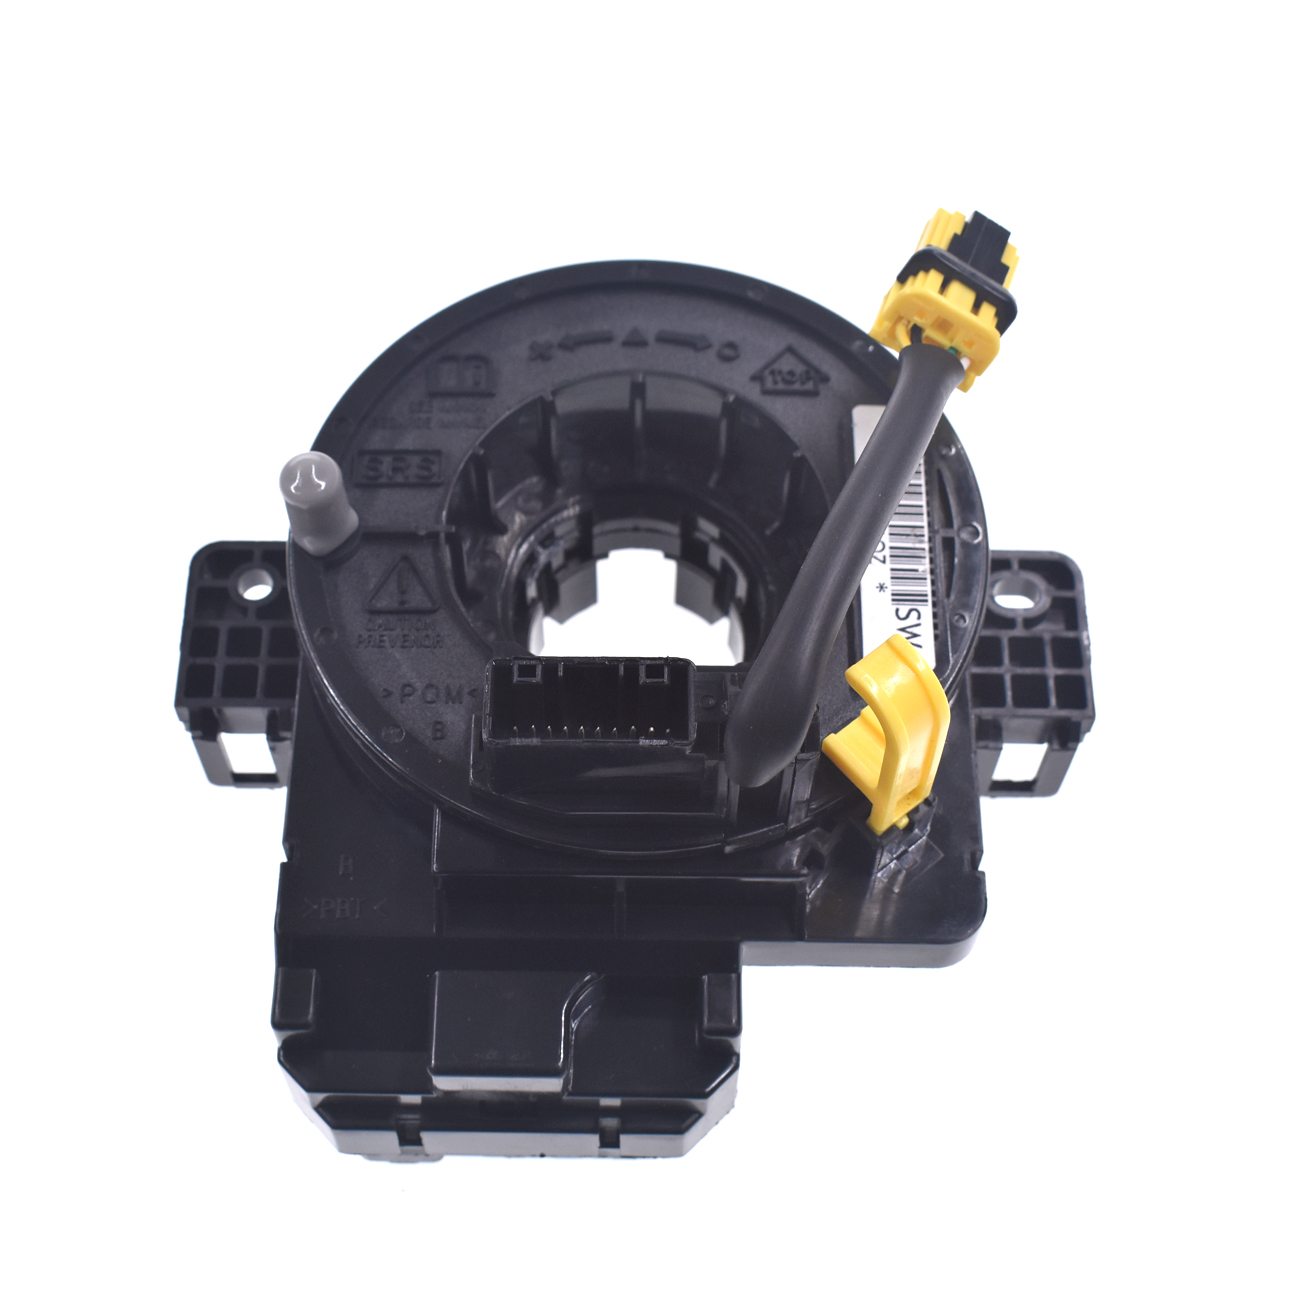 77900-TR0-B21 Airbag Spiral Cable Clock Spring For Honda Civic CRV High Quality